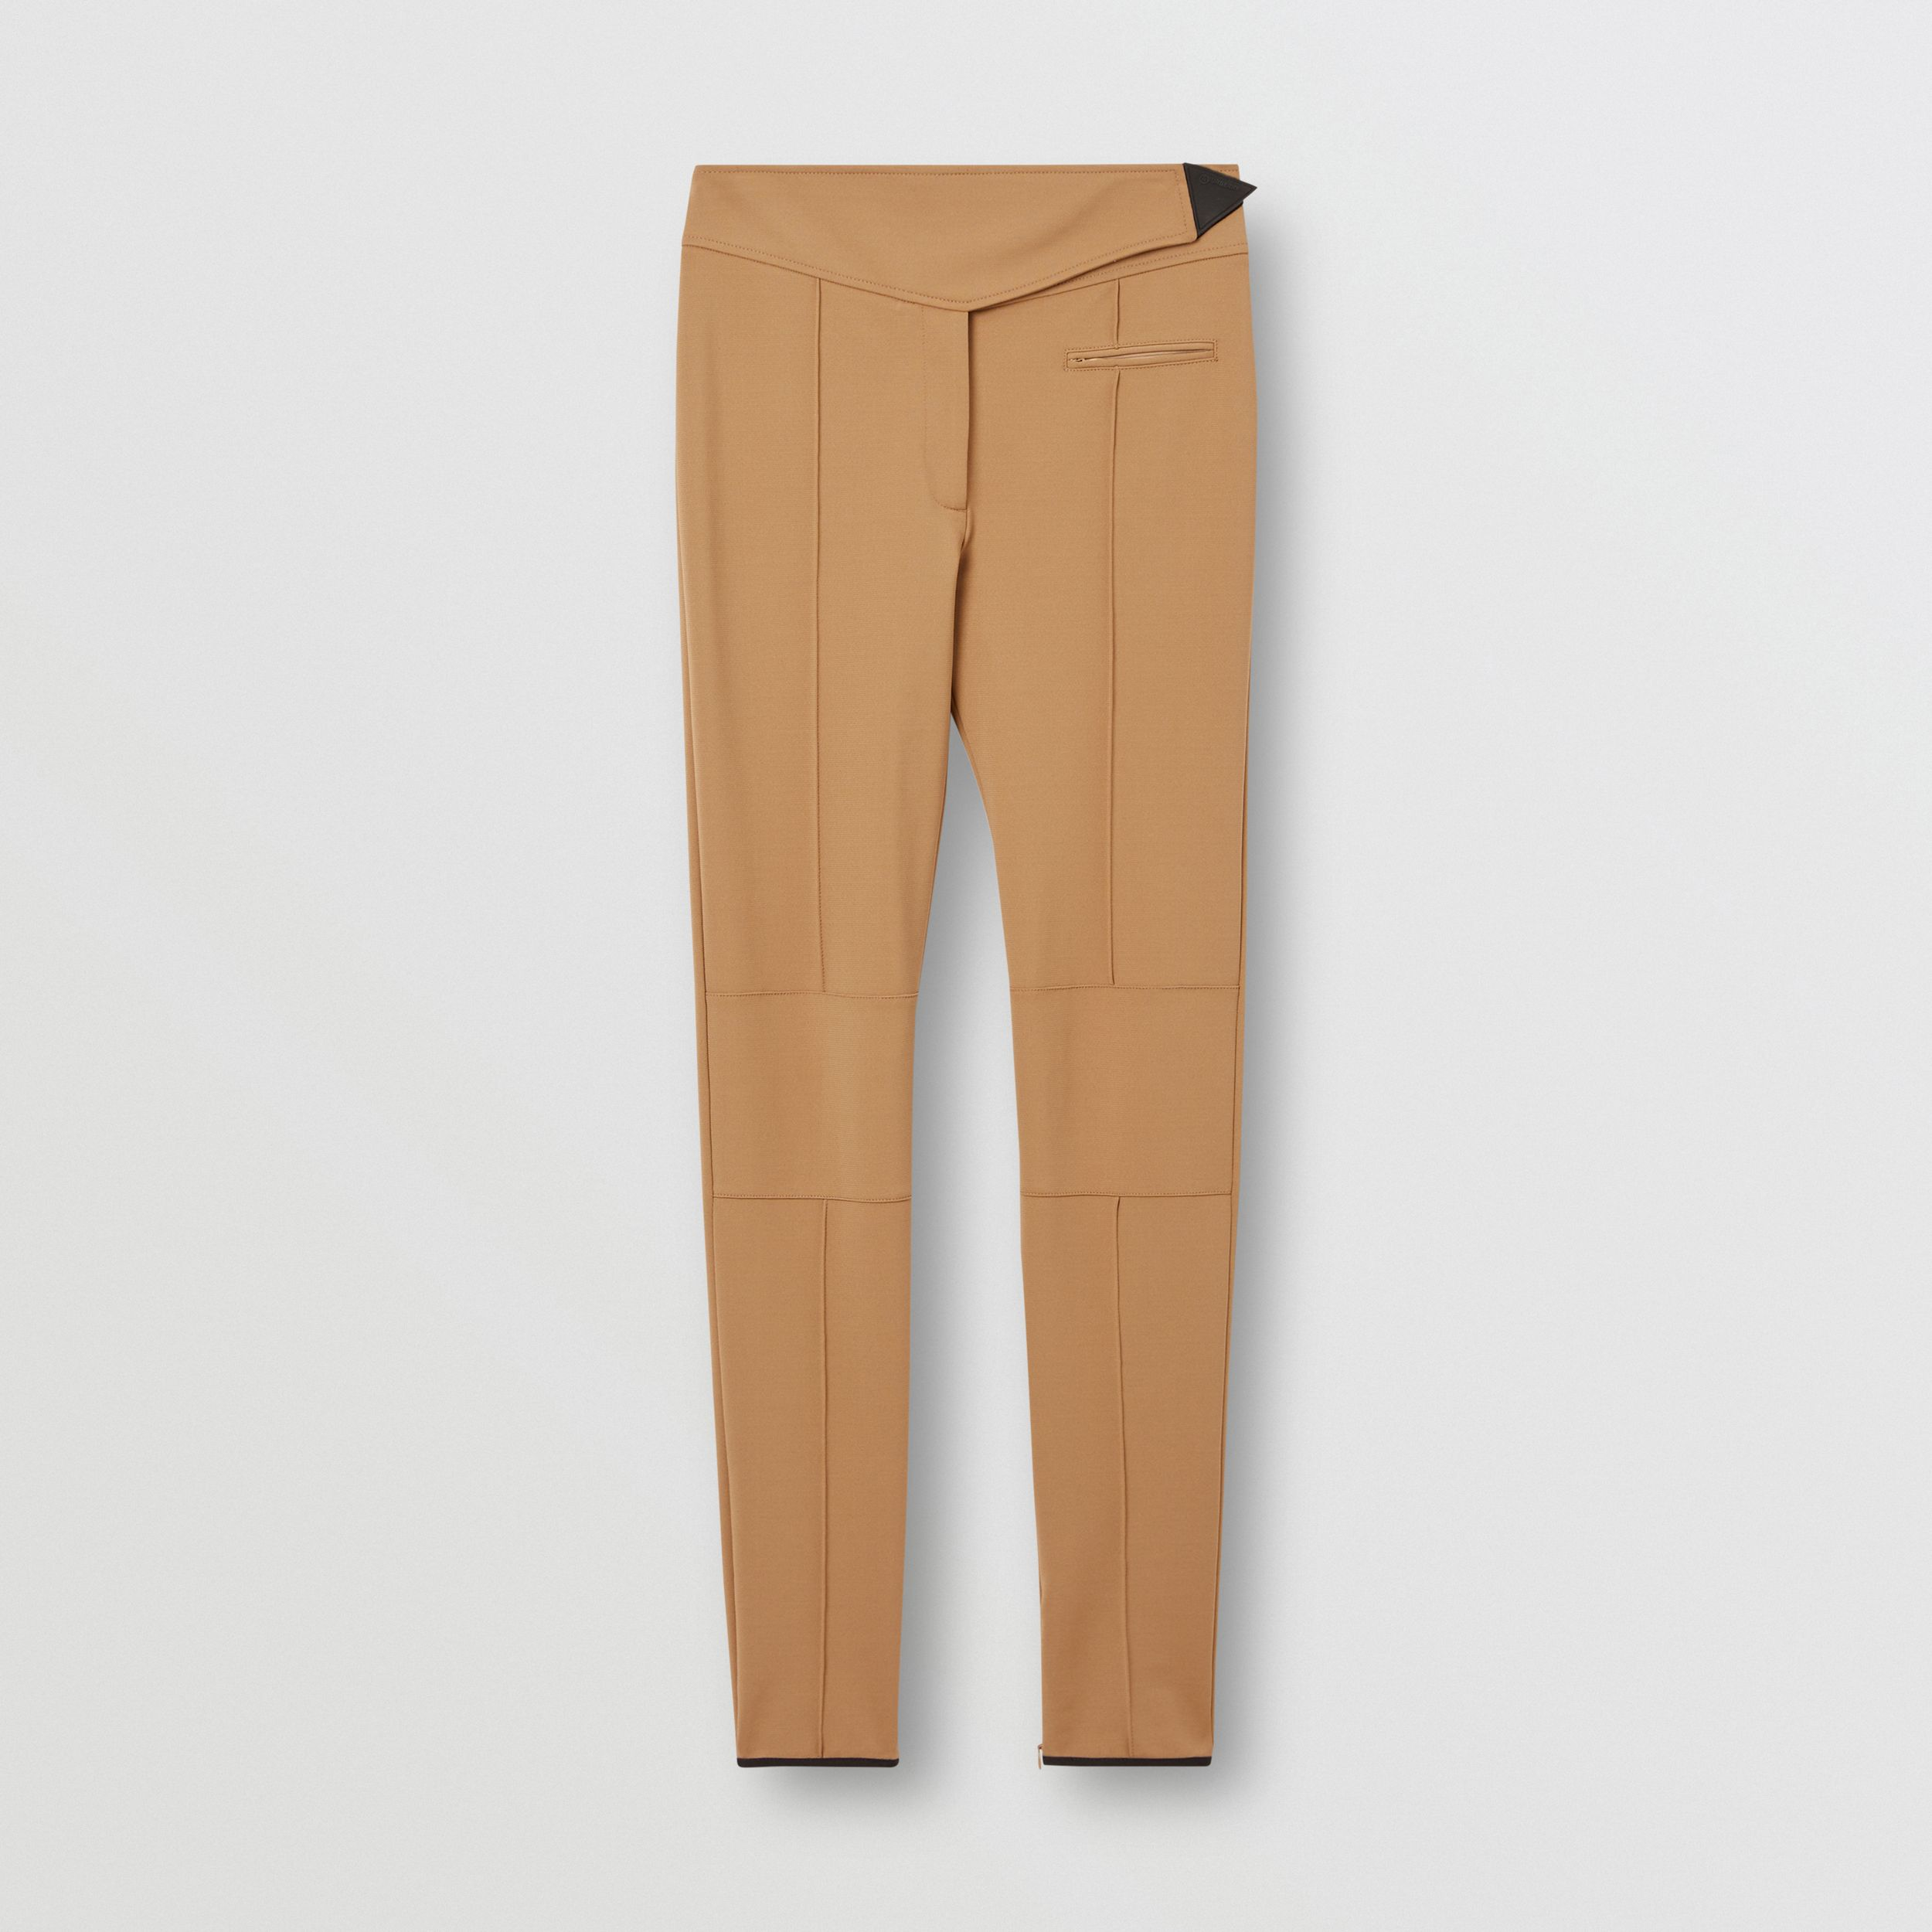 Stretch Crepe Jersey Jodhpurs in Dark Tan - Women | Burberry - 4